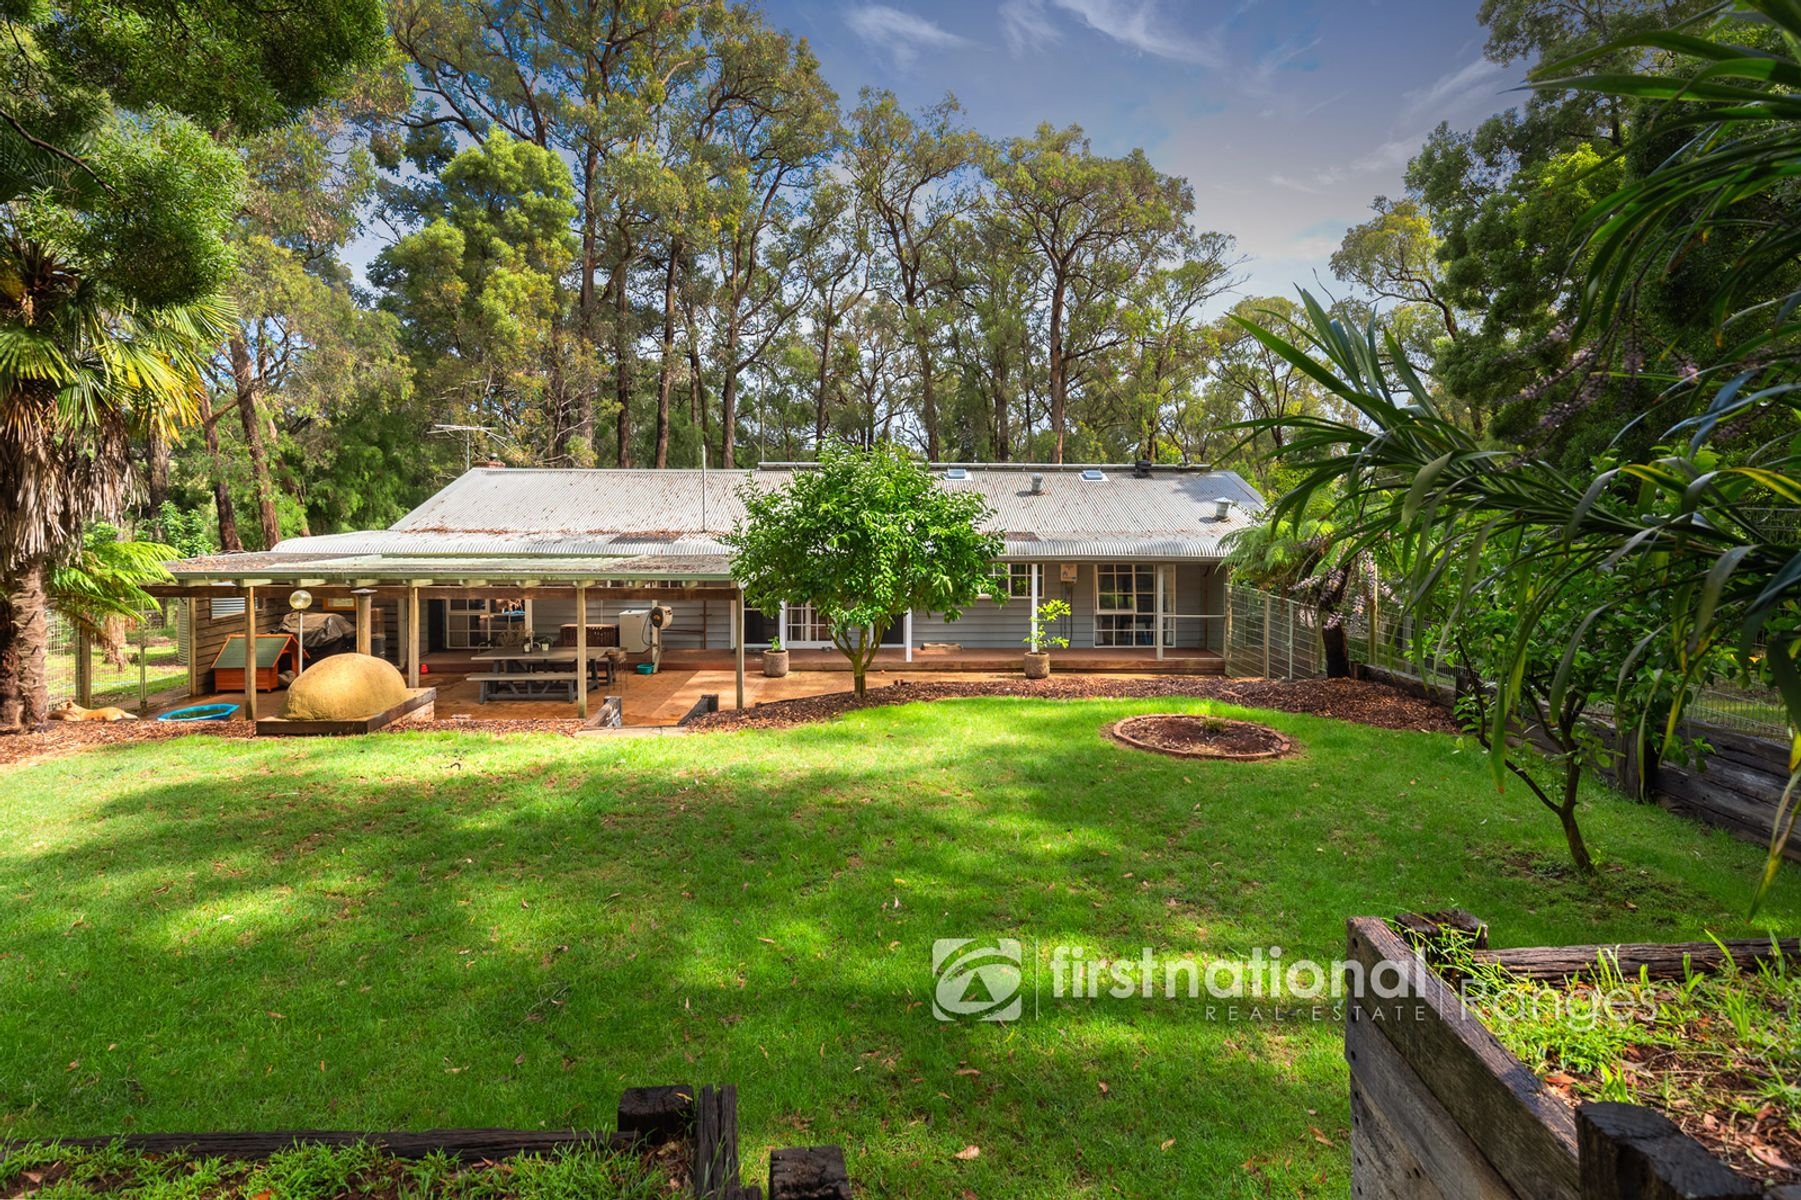 104 Stillwells Deviation, Avonsleigh, VIC 3782